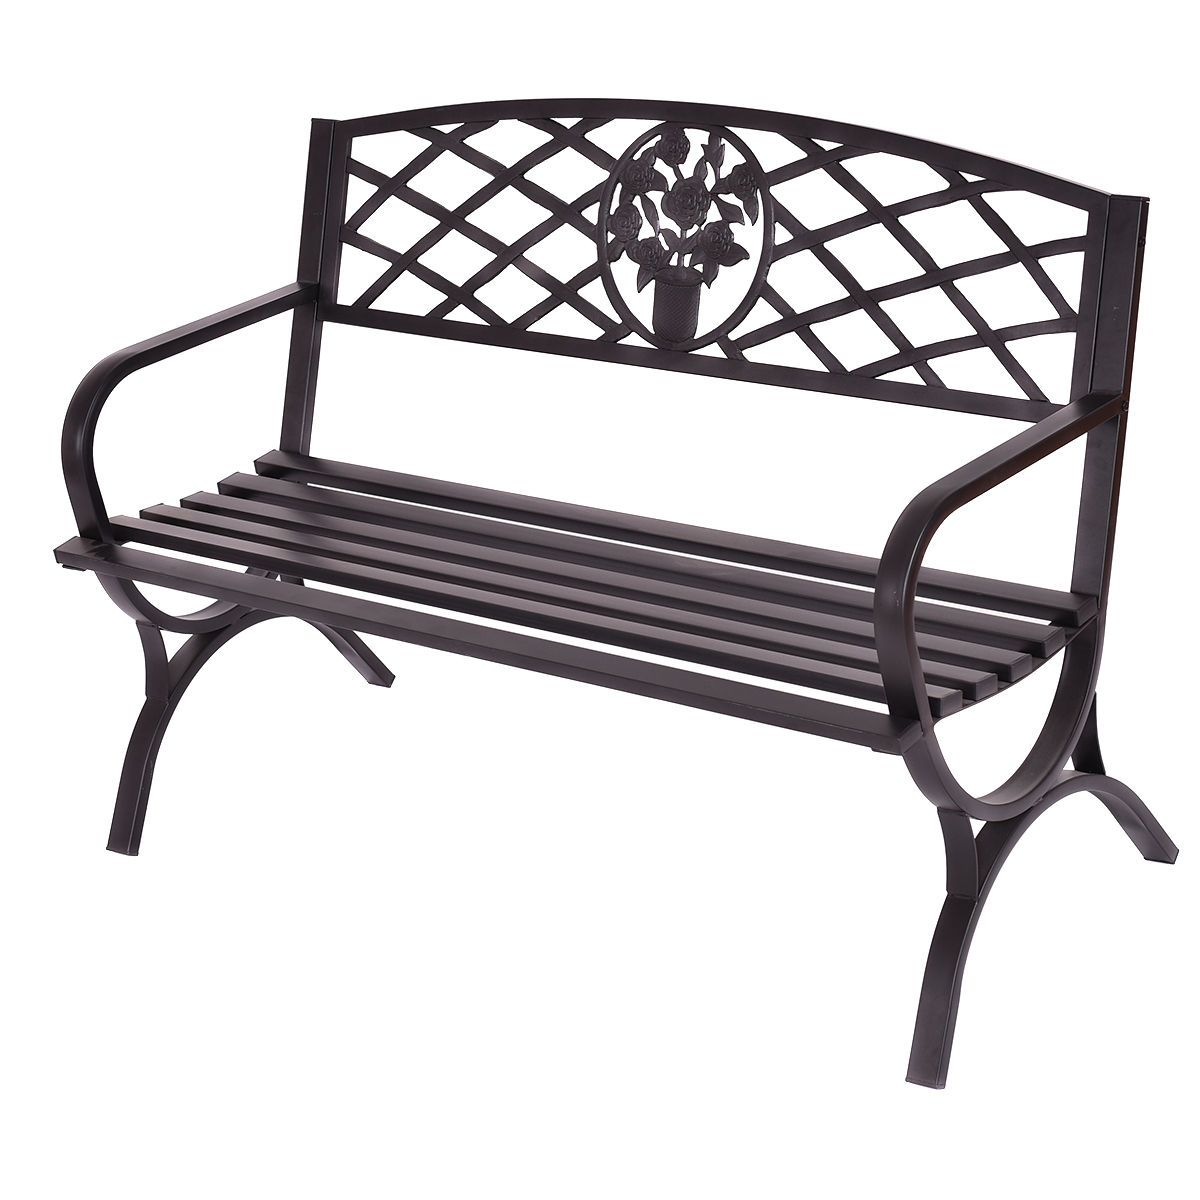 Outdoor Steel Frame Patio New York Park Style Bench